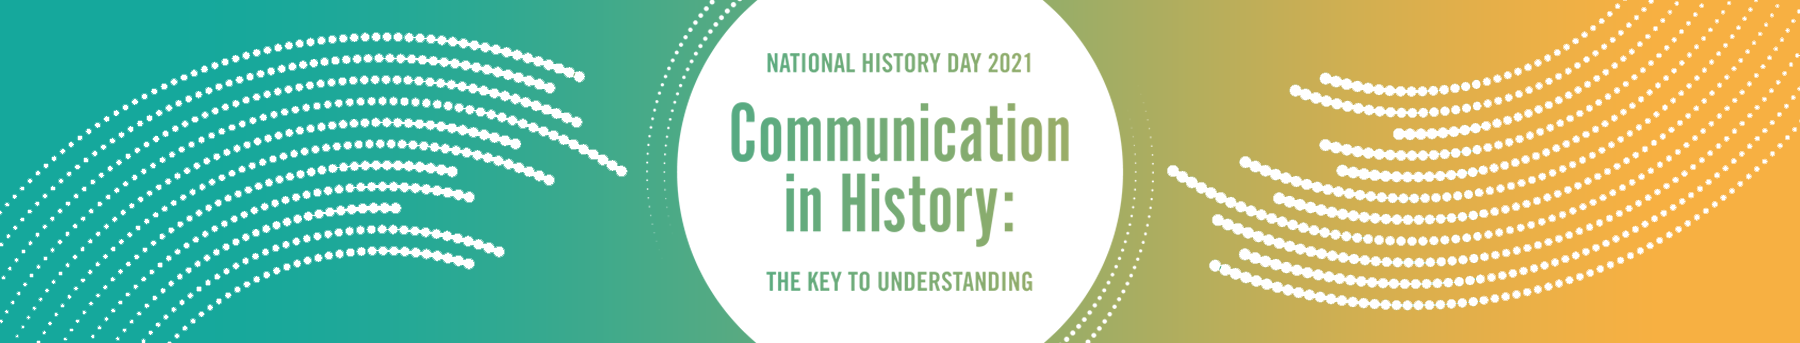 National History Day 2021 Theme, Communication in History: The Key to Understanding